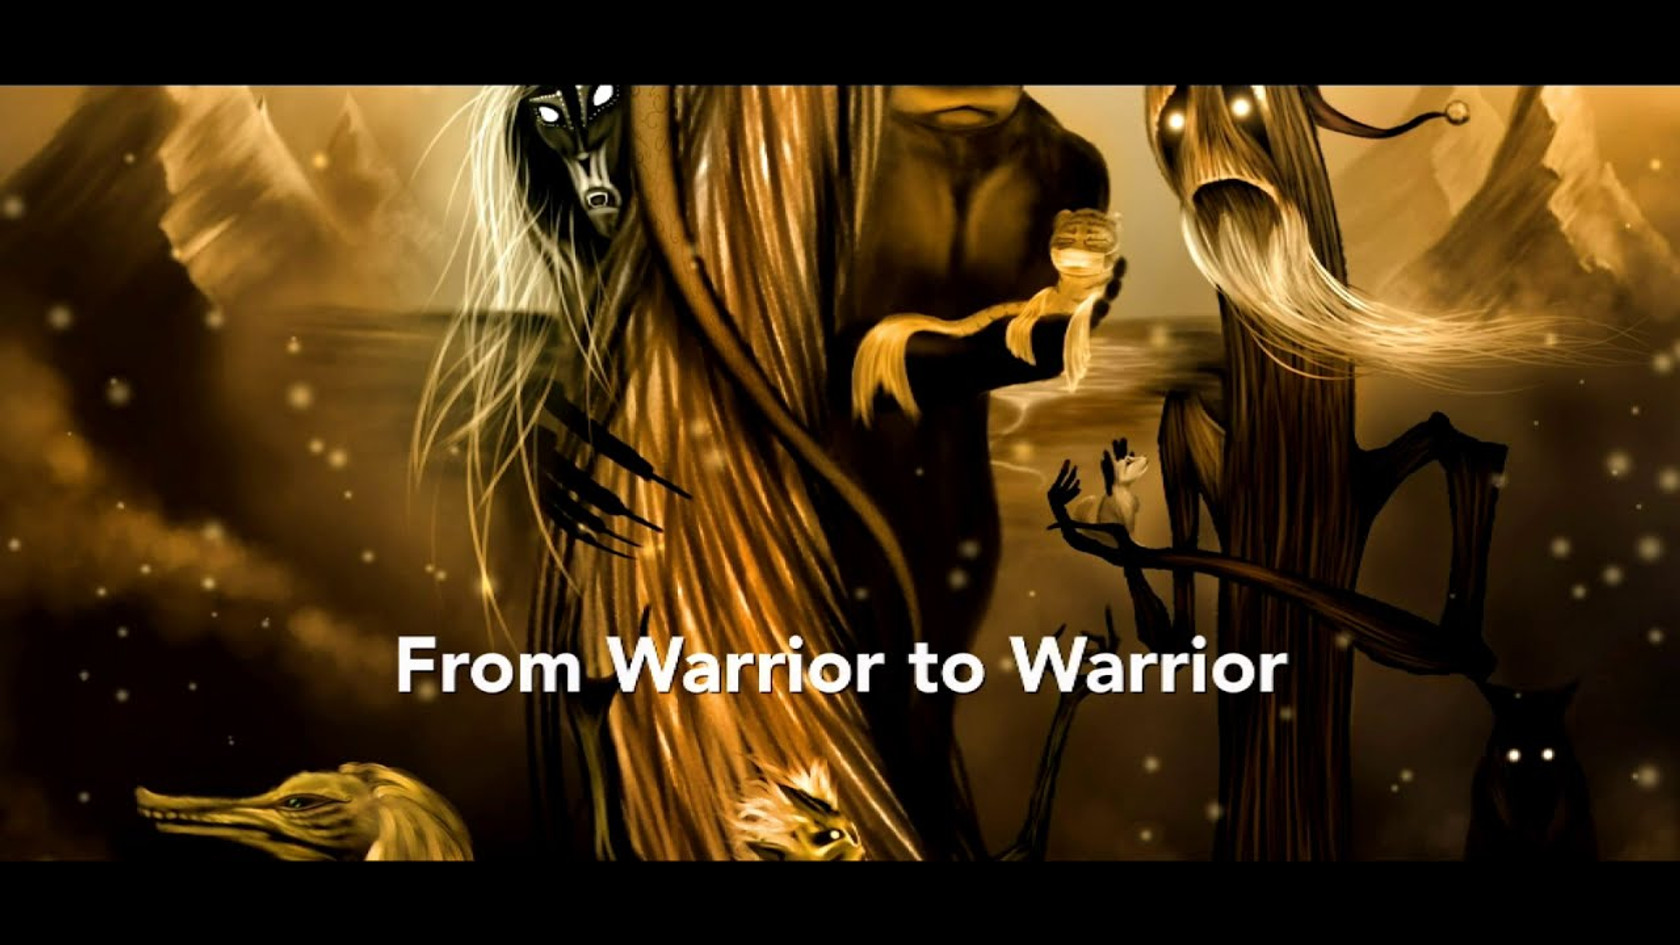 From Warrior to Warrior